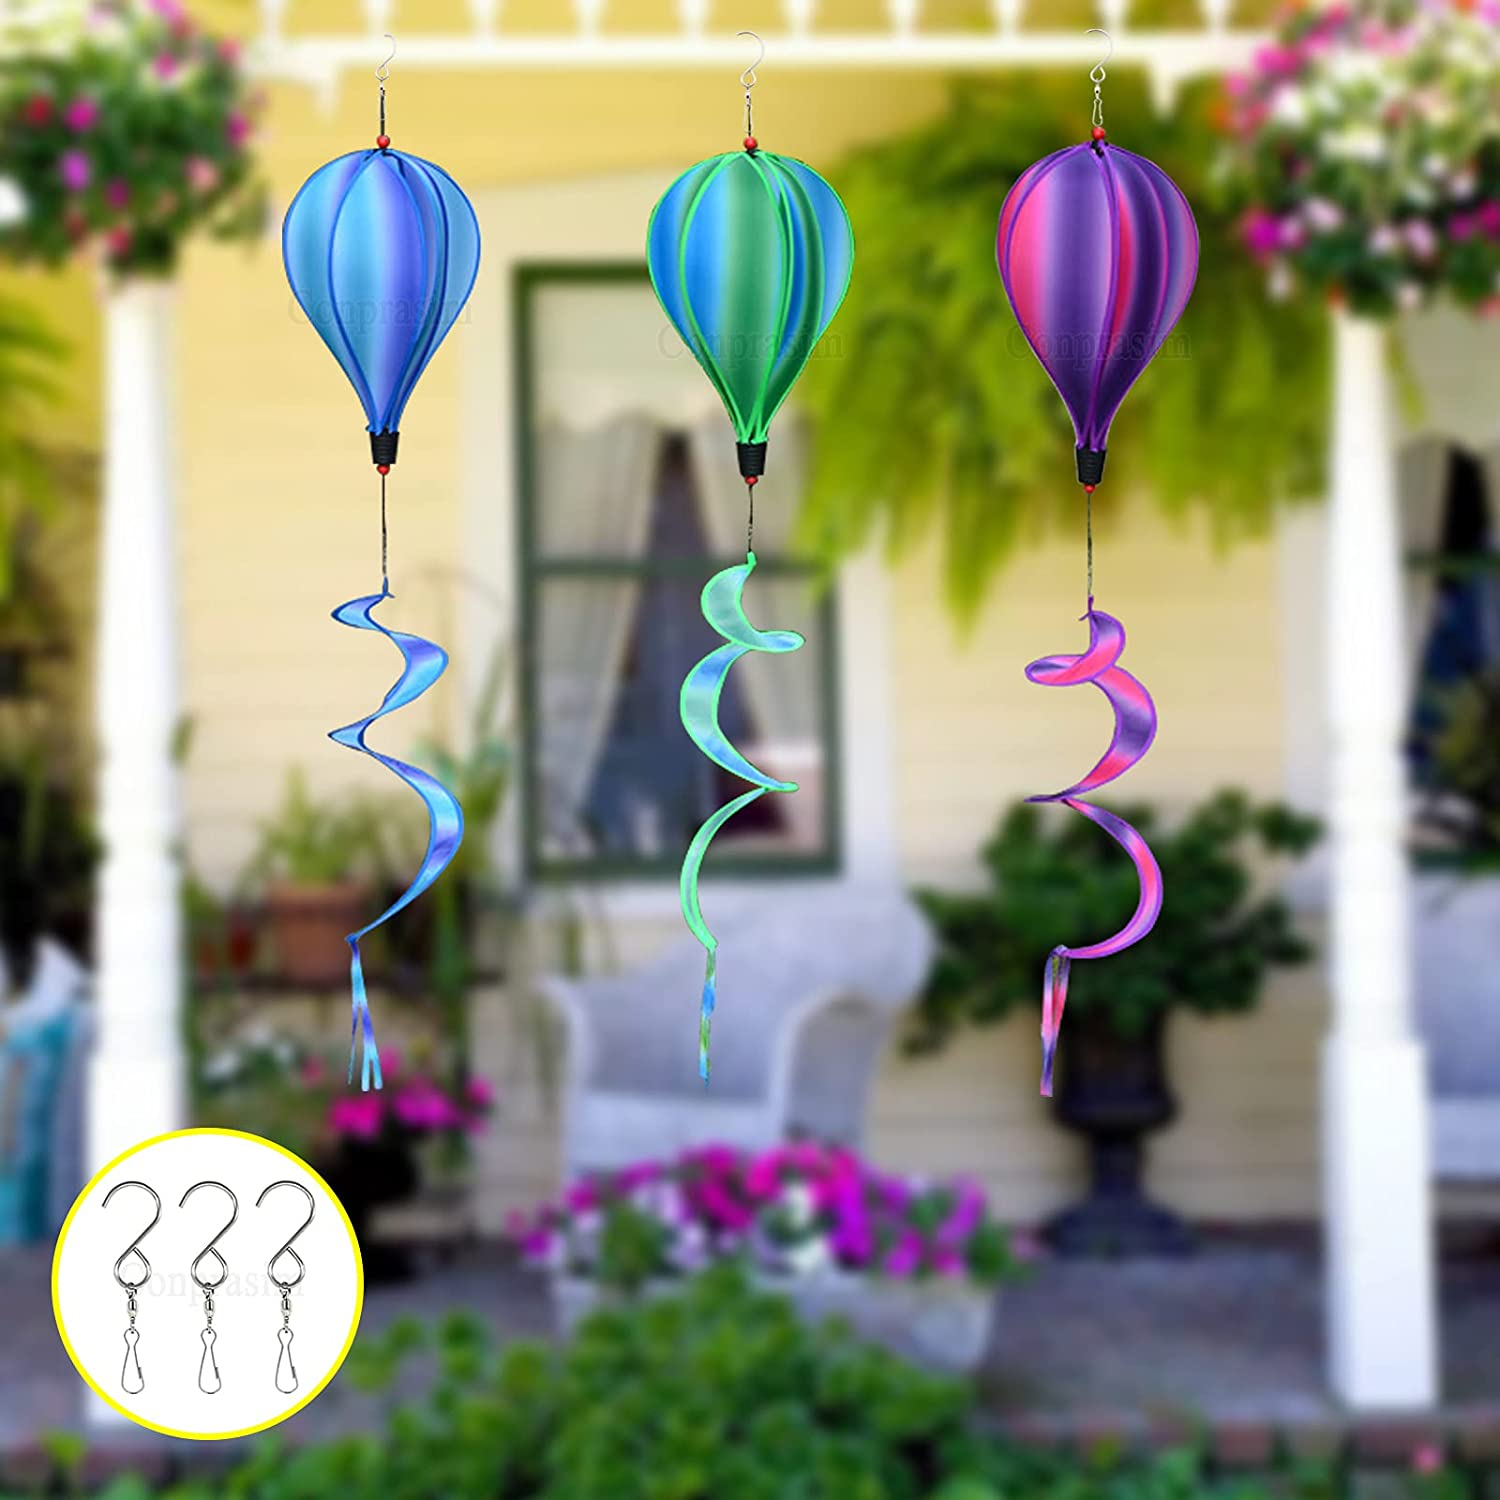 Conprasim Kinetic Hot Air Balloon Wind Spinners Decorations Outdoor Hanging, Colorful Rainbow Yard Decor, Wind Catchers Ornaments, for Park Decoration Garden Ornaments(3 Pack)